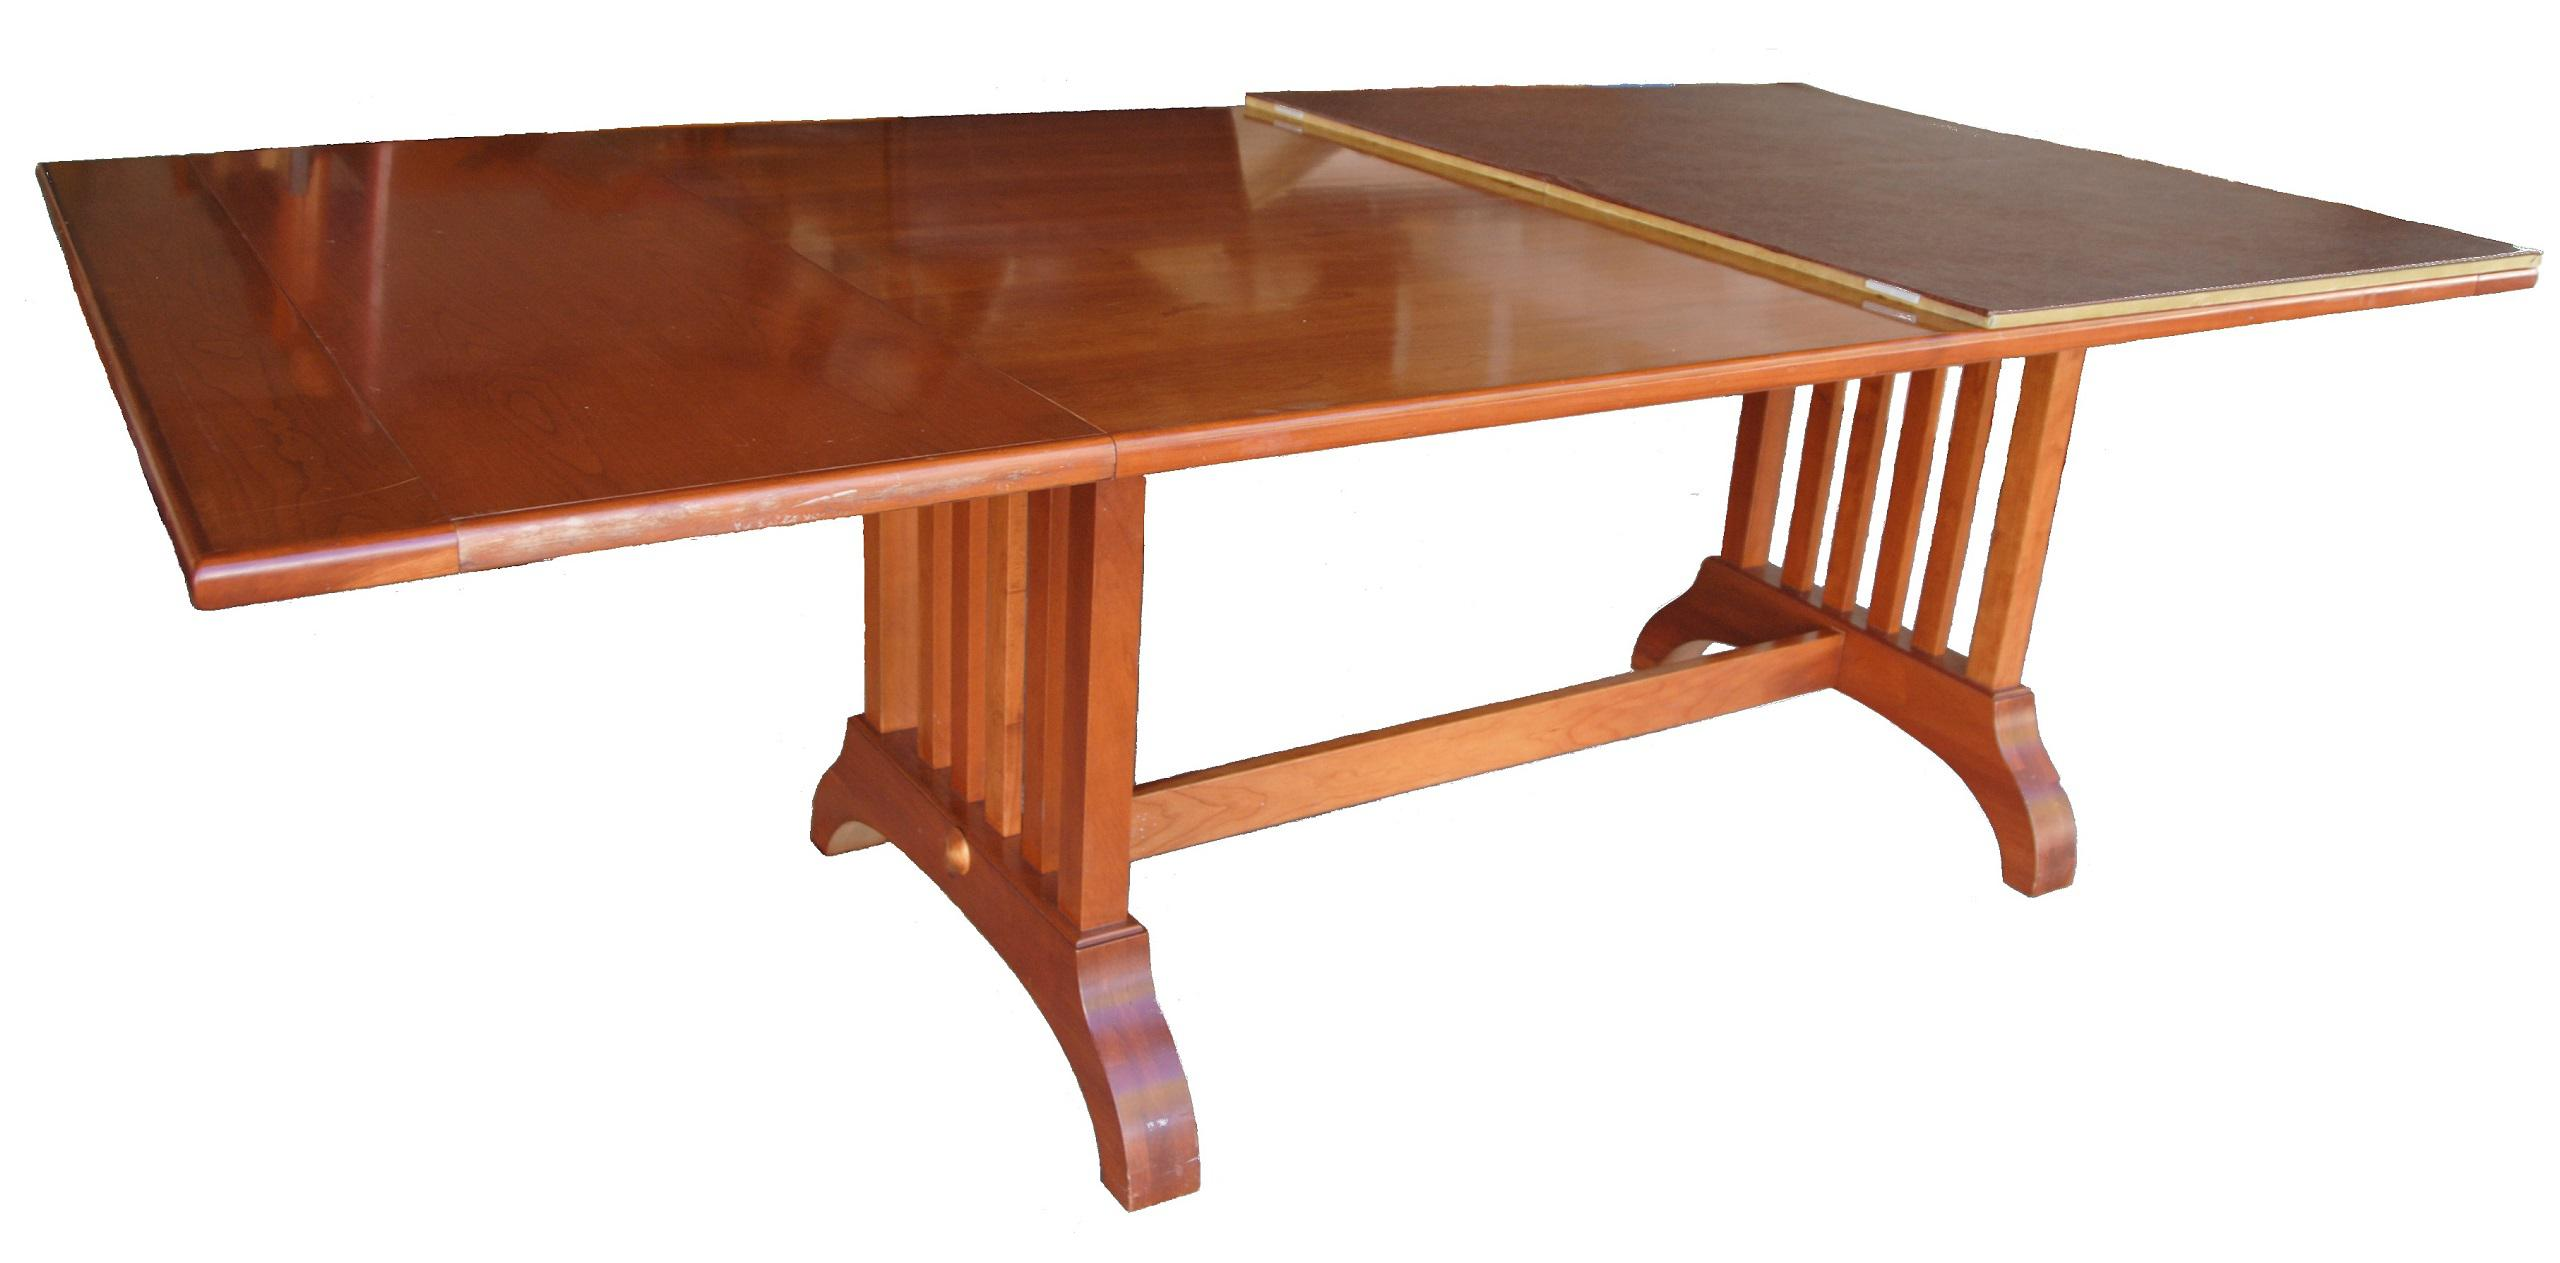 Pennsylvania House Shaker Dining Table U0026 Chairs   Image 8 Of 11